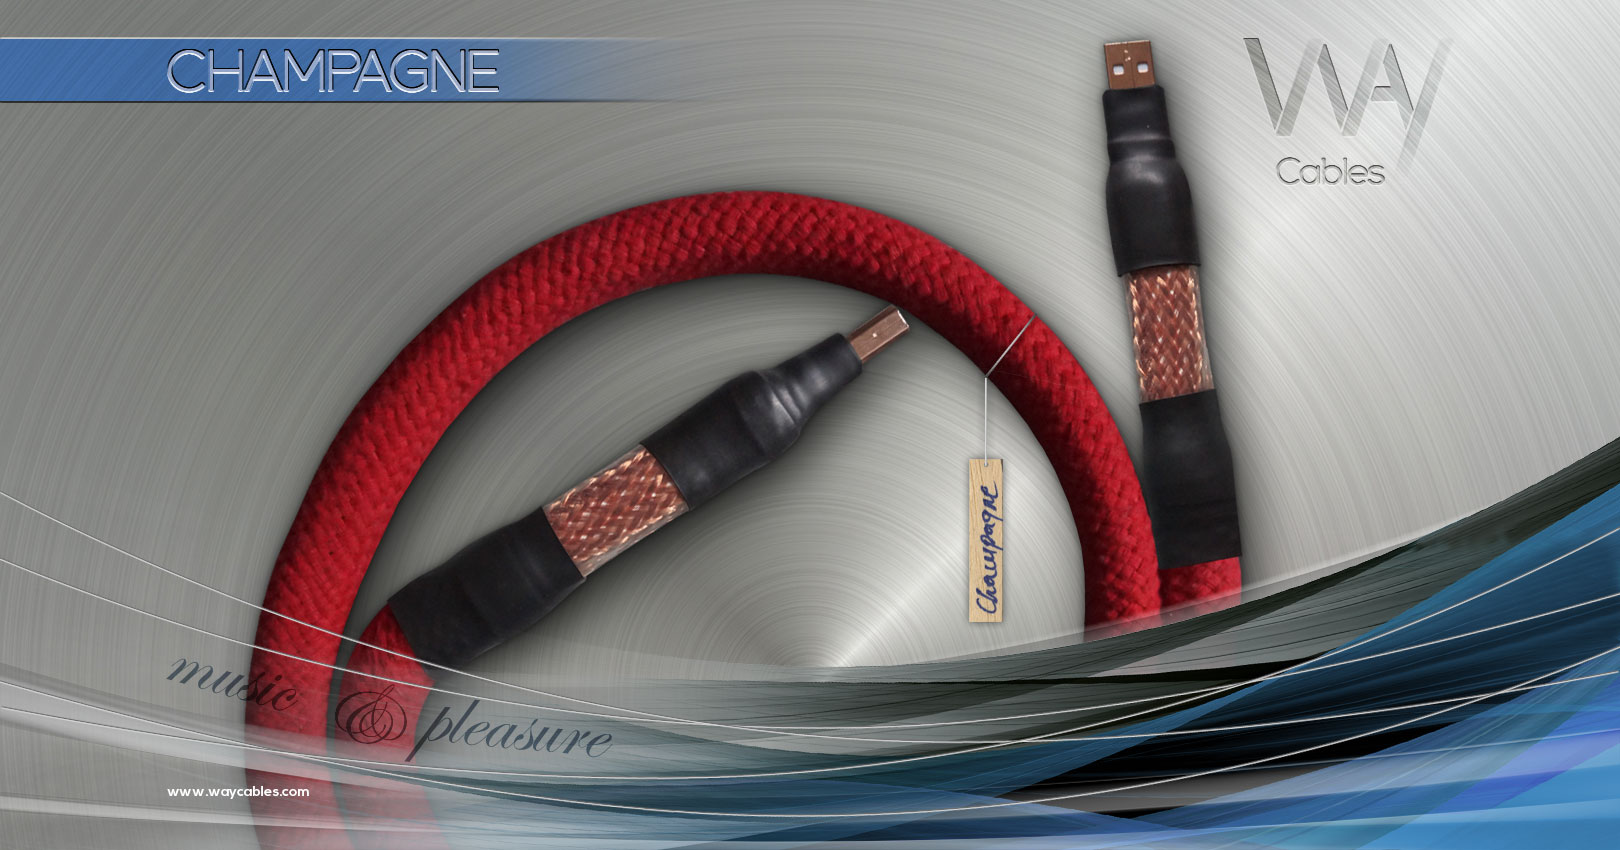 WAY Cables - CHAMPAGNE - USB Audio cable